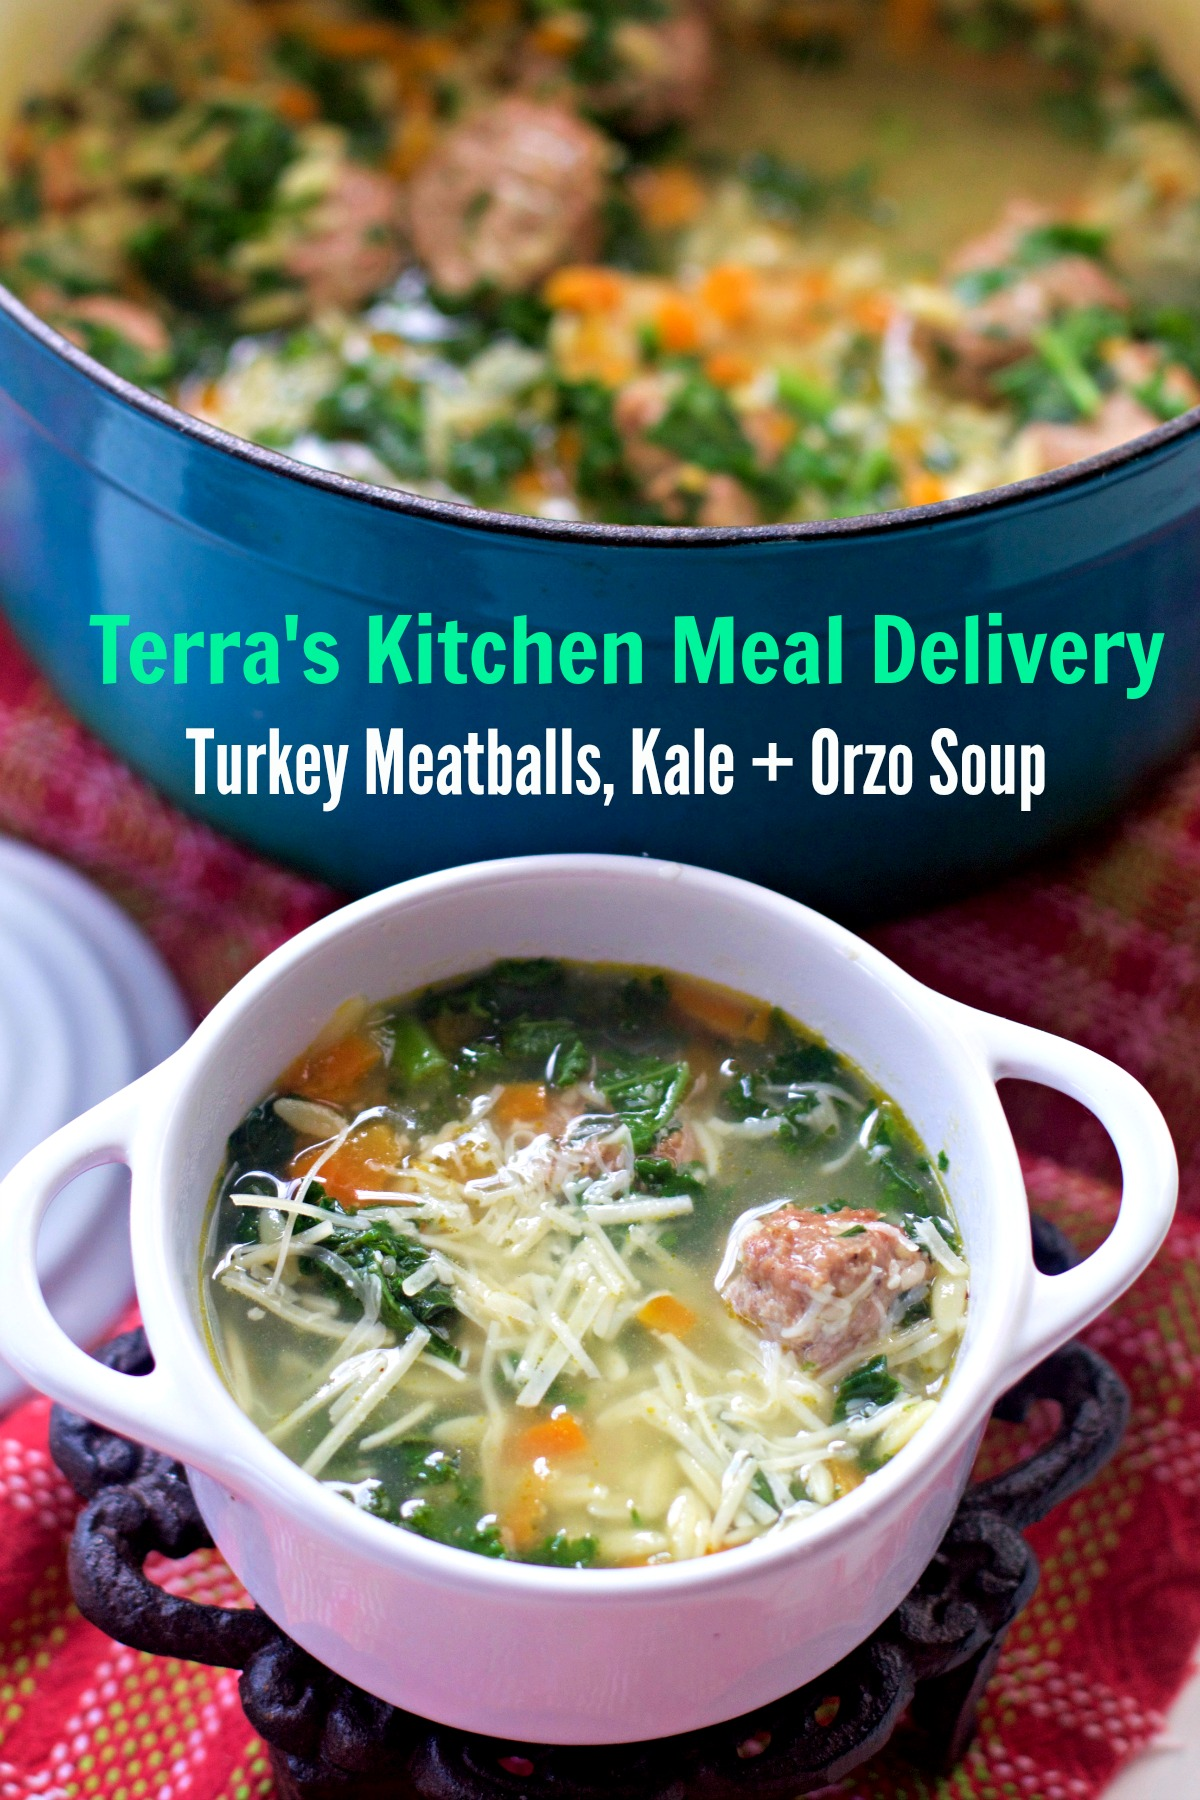 Turkey Meatball Soup from Terra's Kitchen best meal delivery service by Angela Roberts